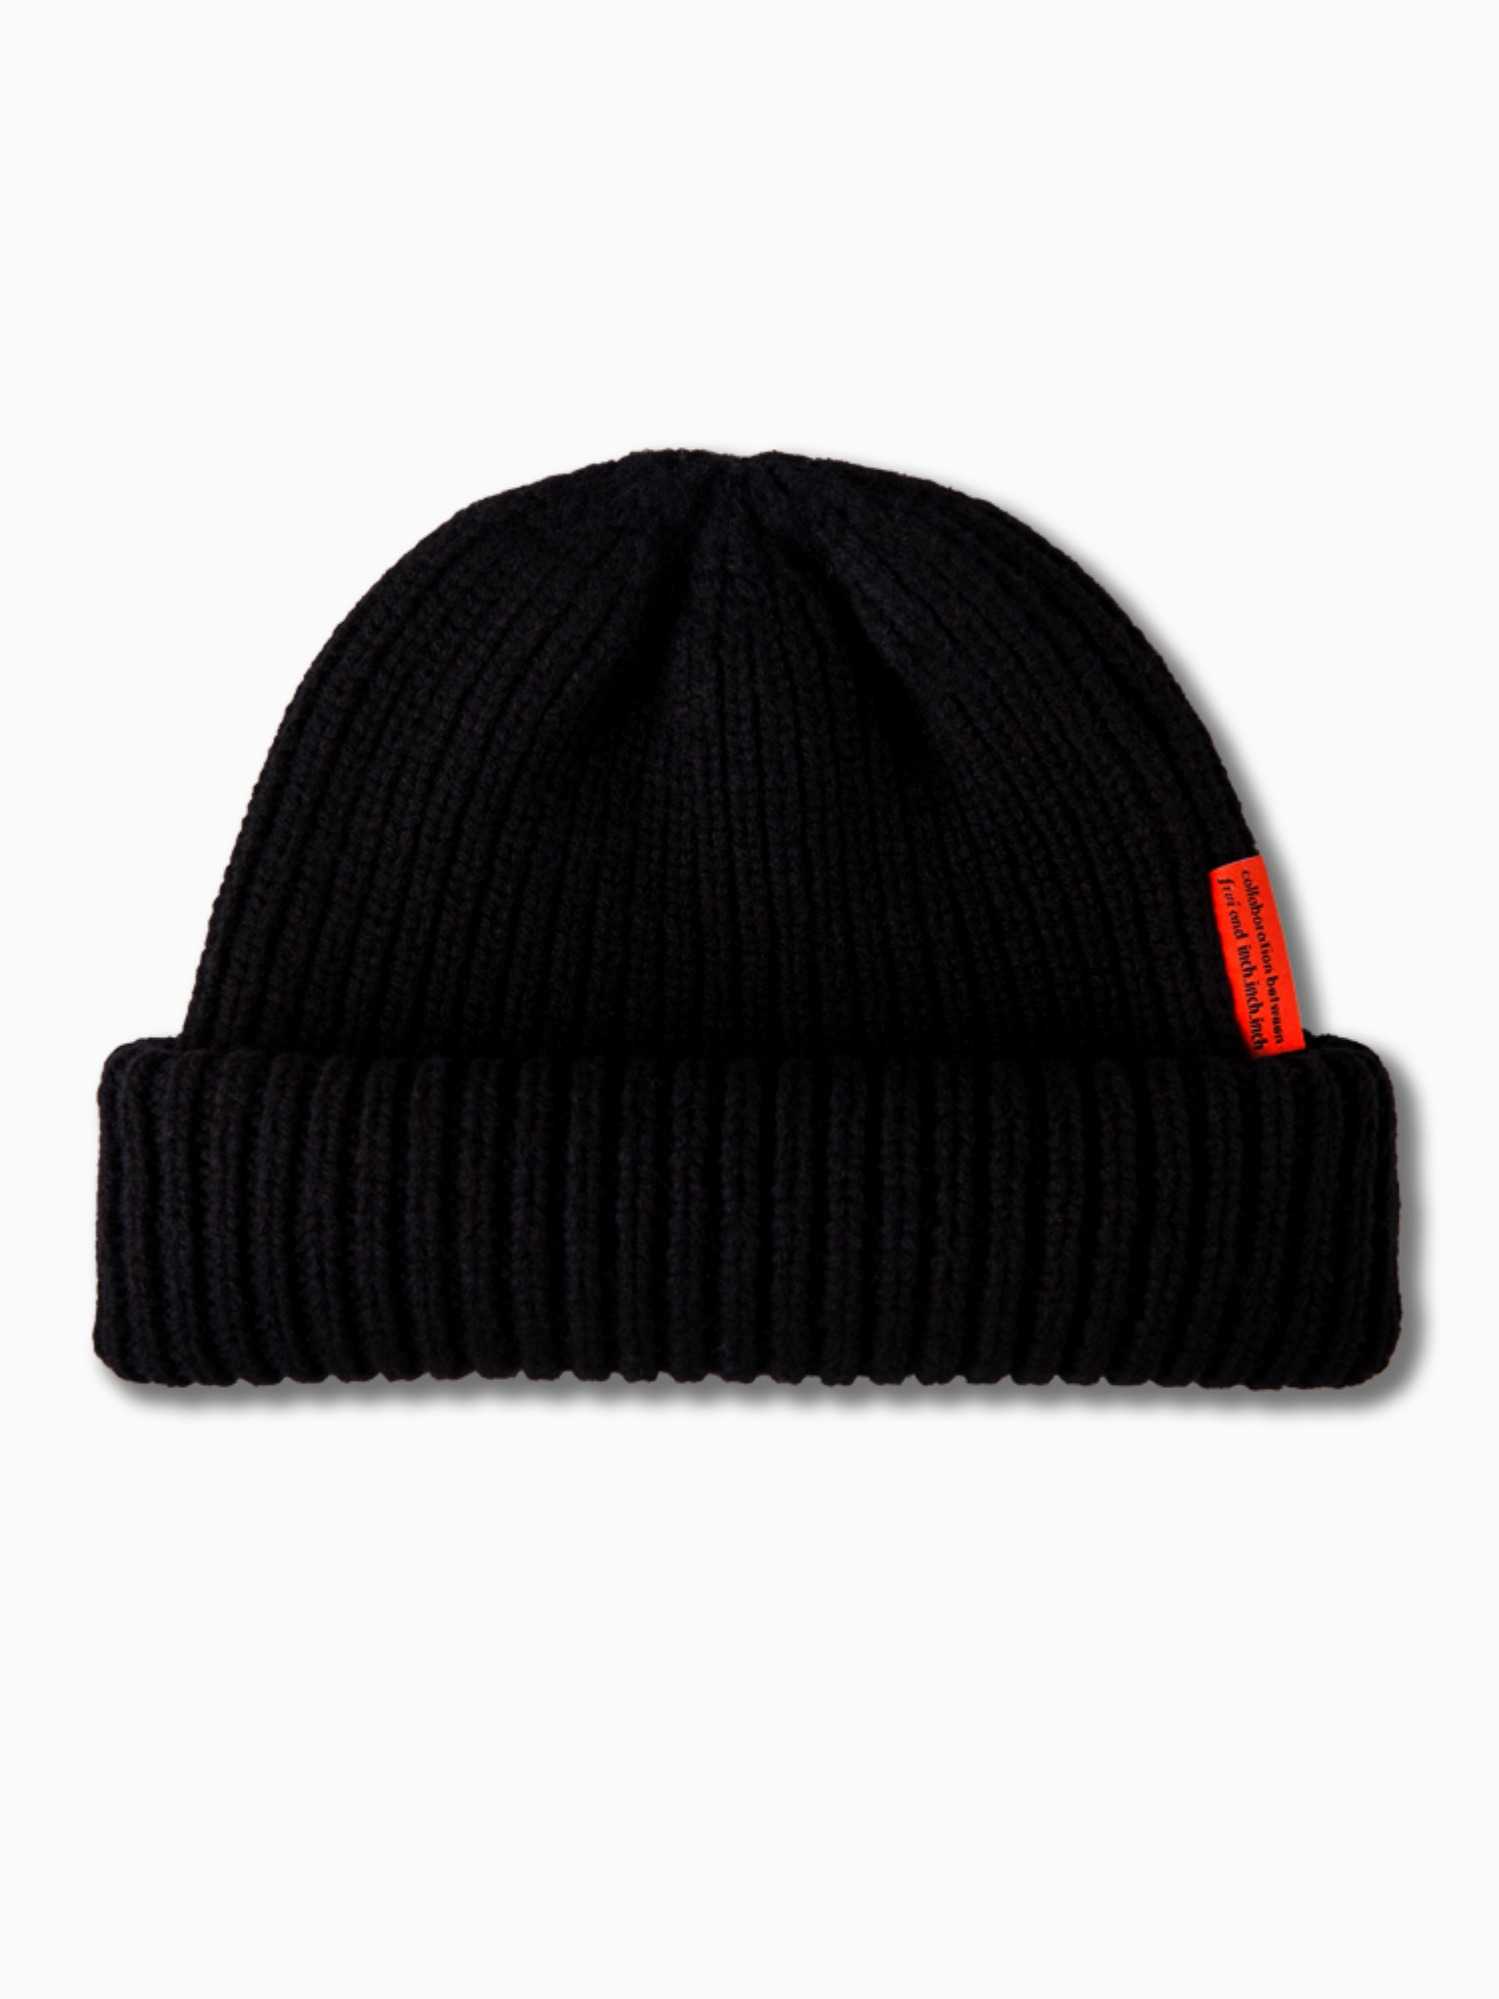 [inch_inch_beanie] Lambs-wool / Black